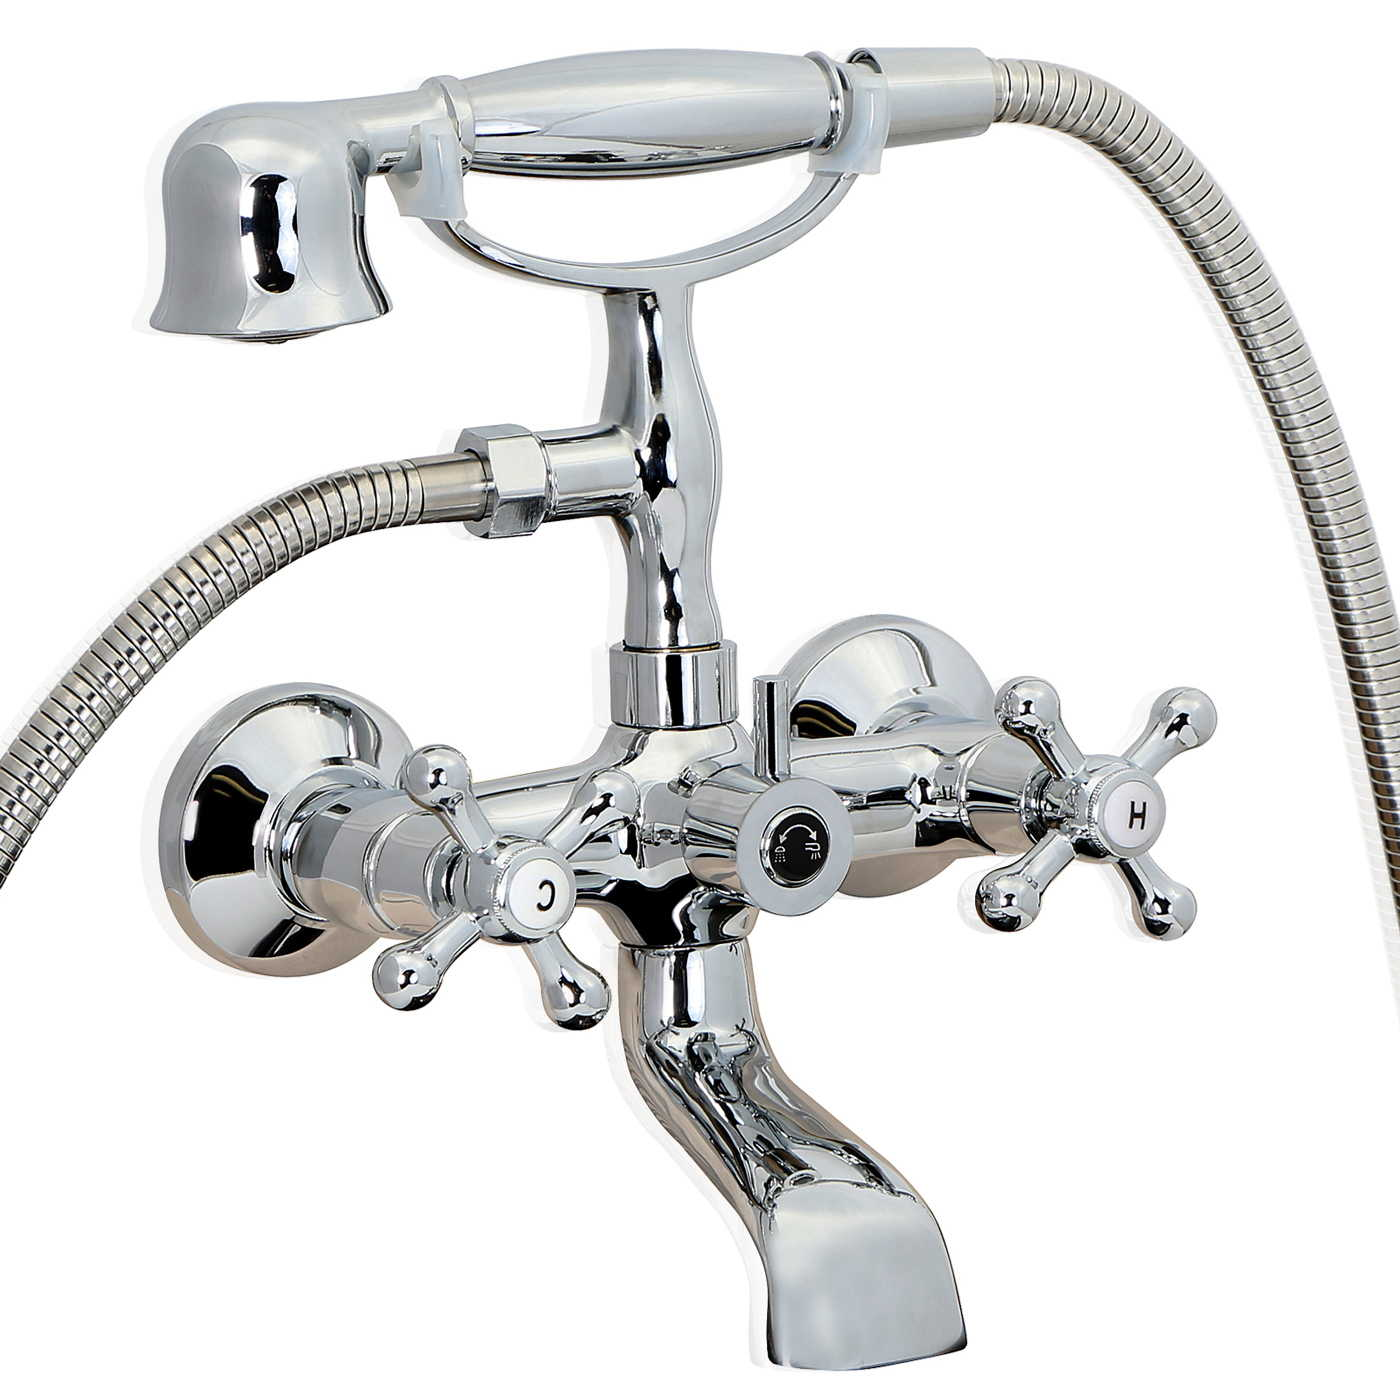 Chrome Vintage Clawfoot Bath TUB Faucet With Handshower Wall Mount EBay